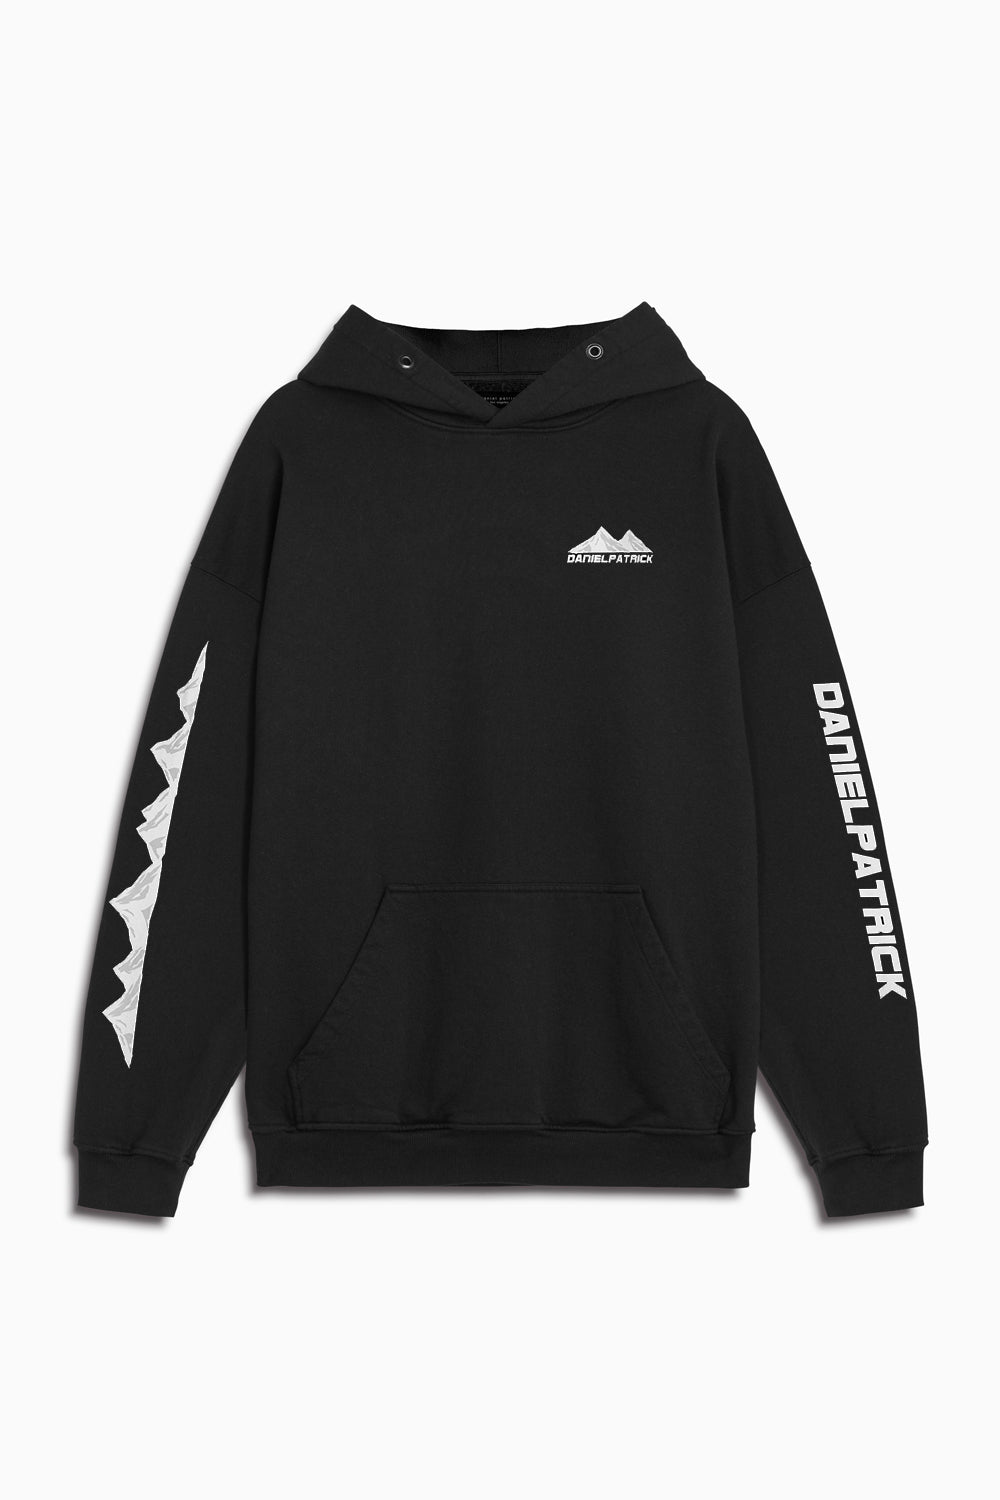 moving mountains hoodie in black by daniel patrick